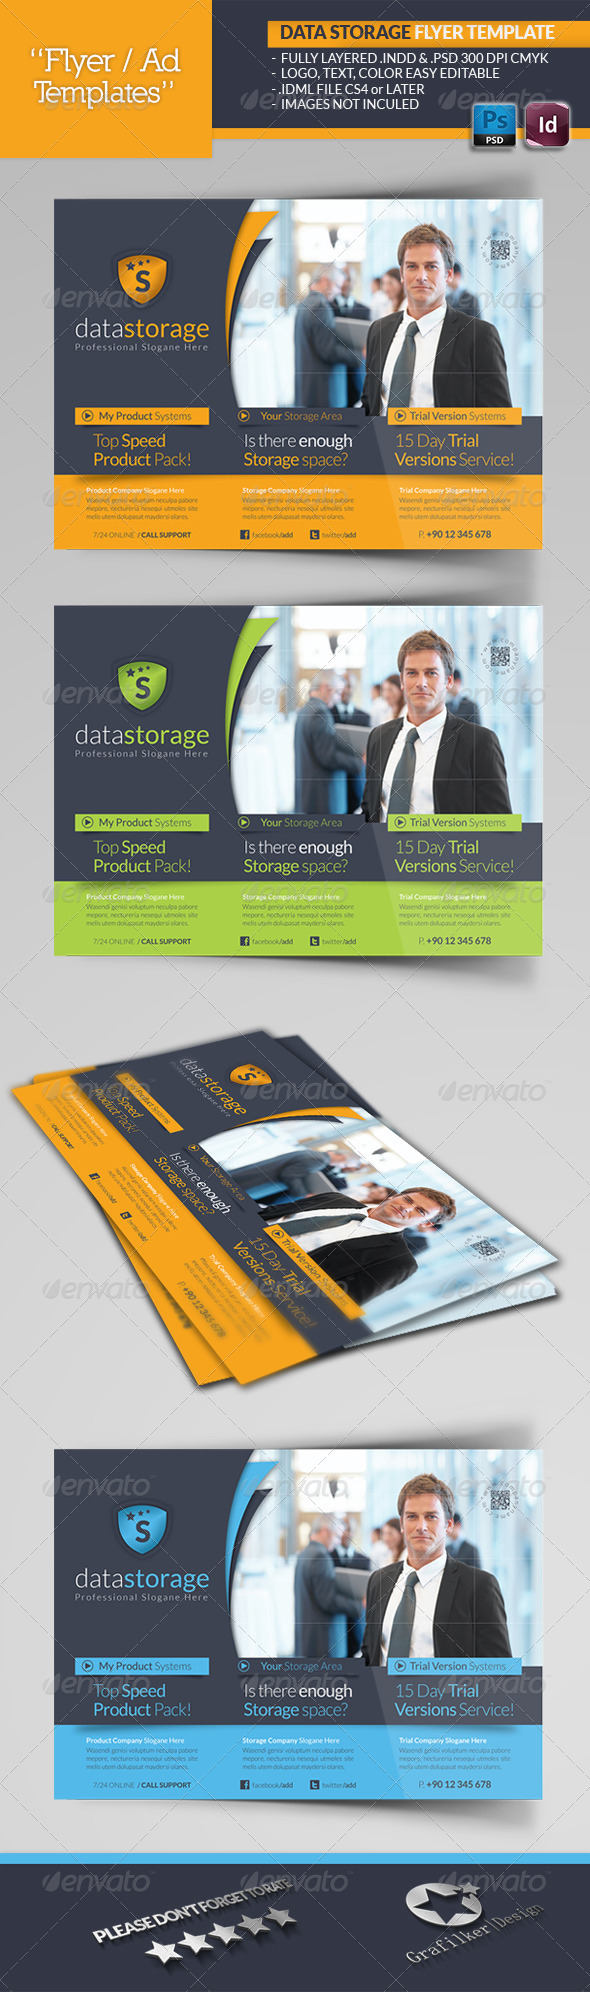 Data Storage Flyer Template - Corporate Flyers